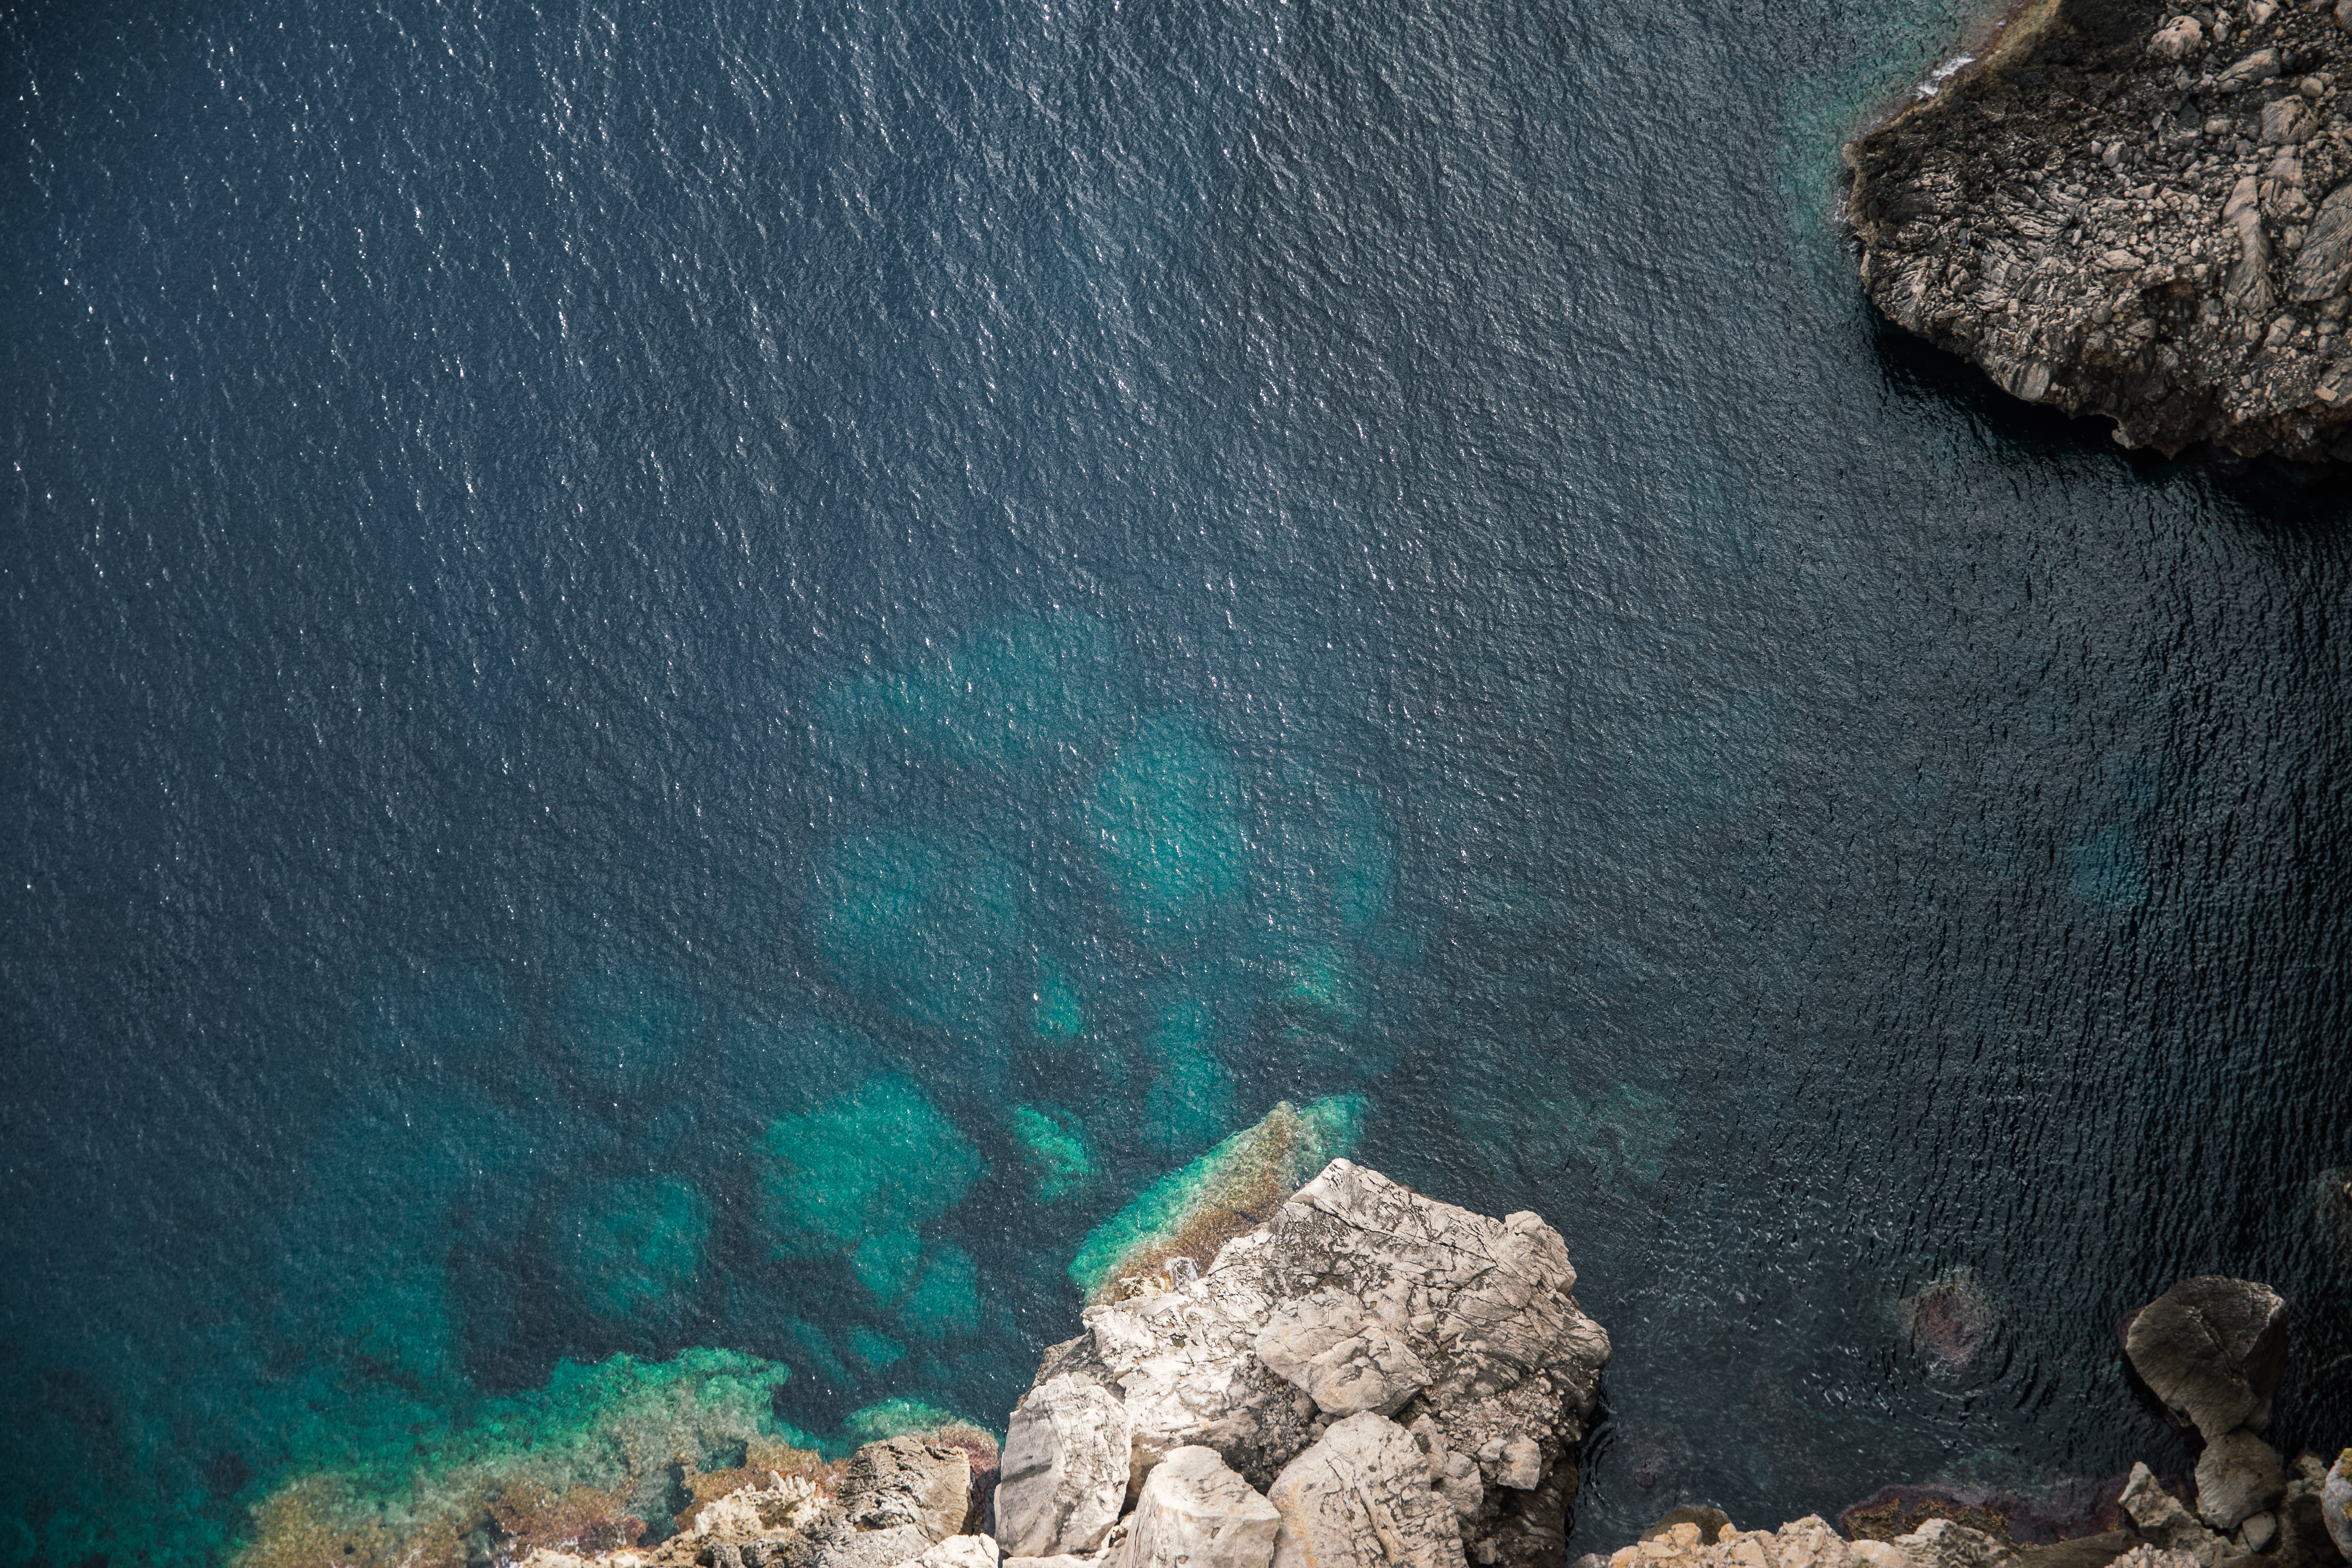 Aerial View of Rock and Water